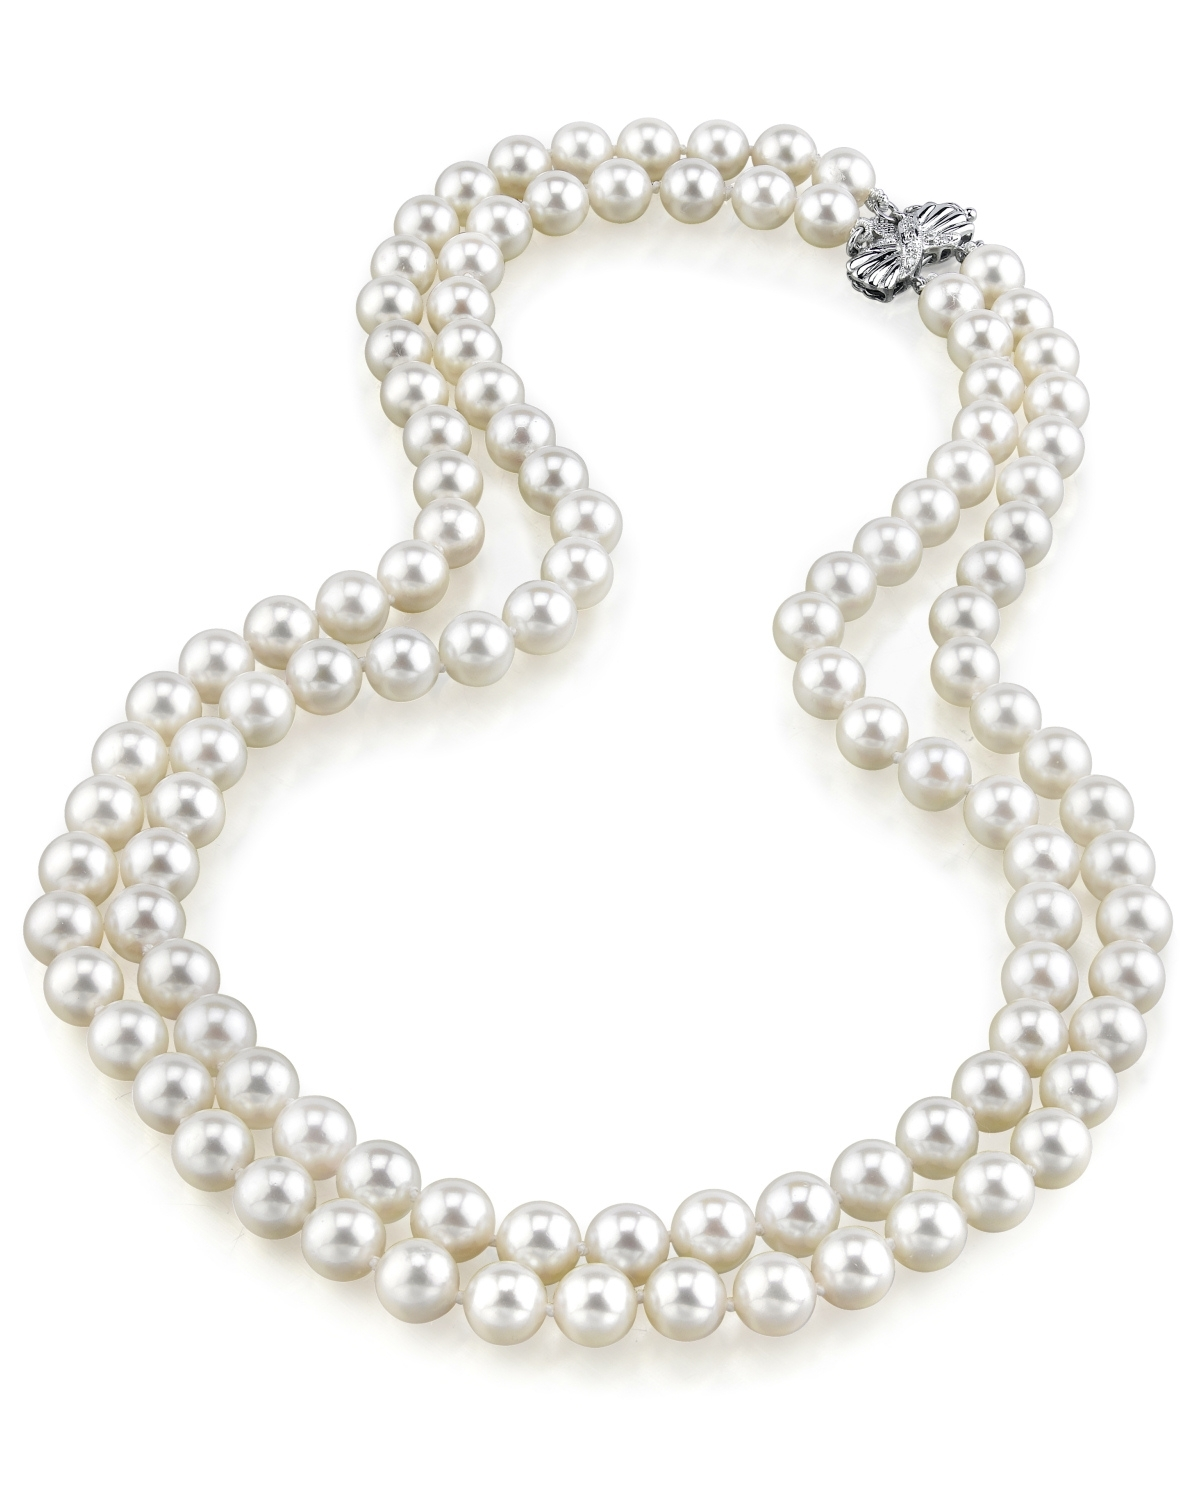 aa63e36288d7e 9-10mm White Freshwater Pearl Double Strand Necklace